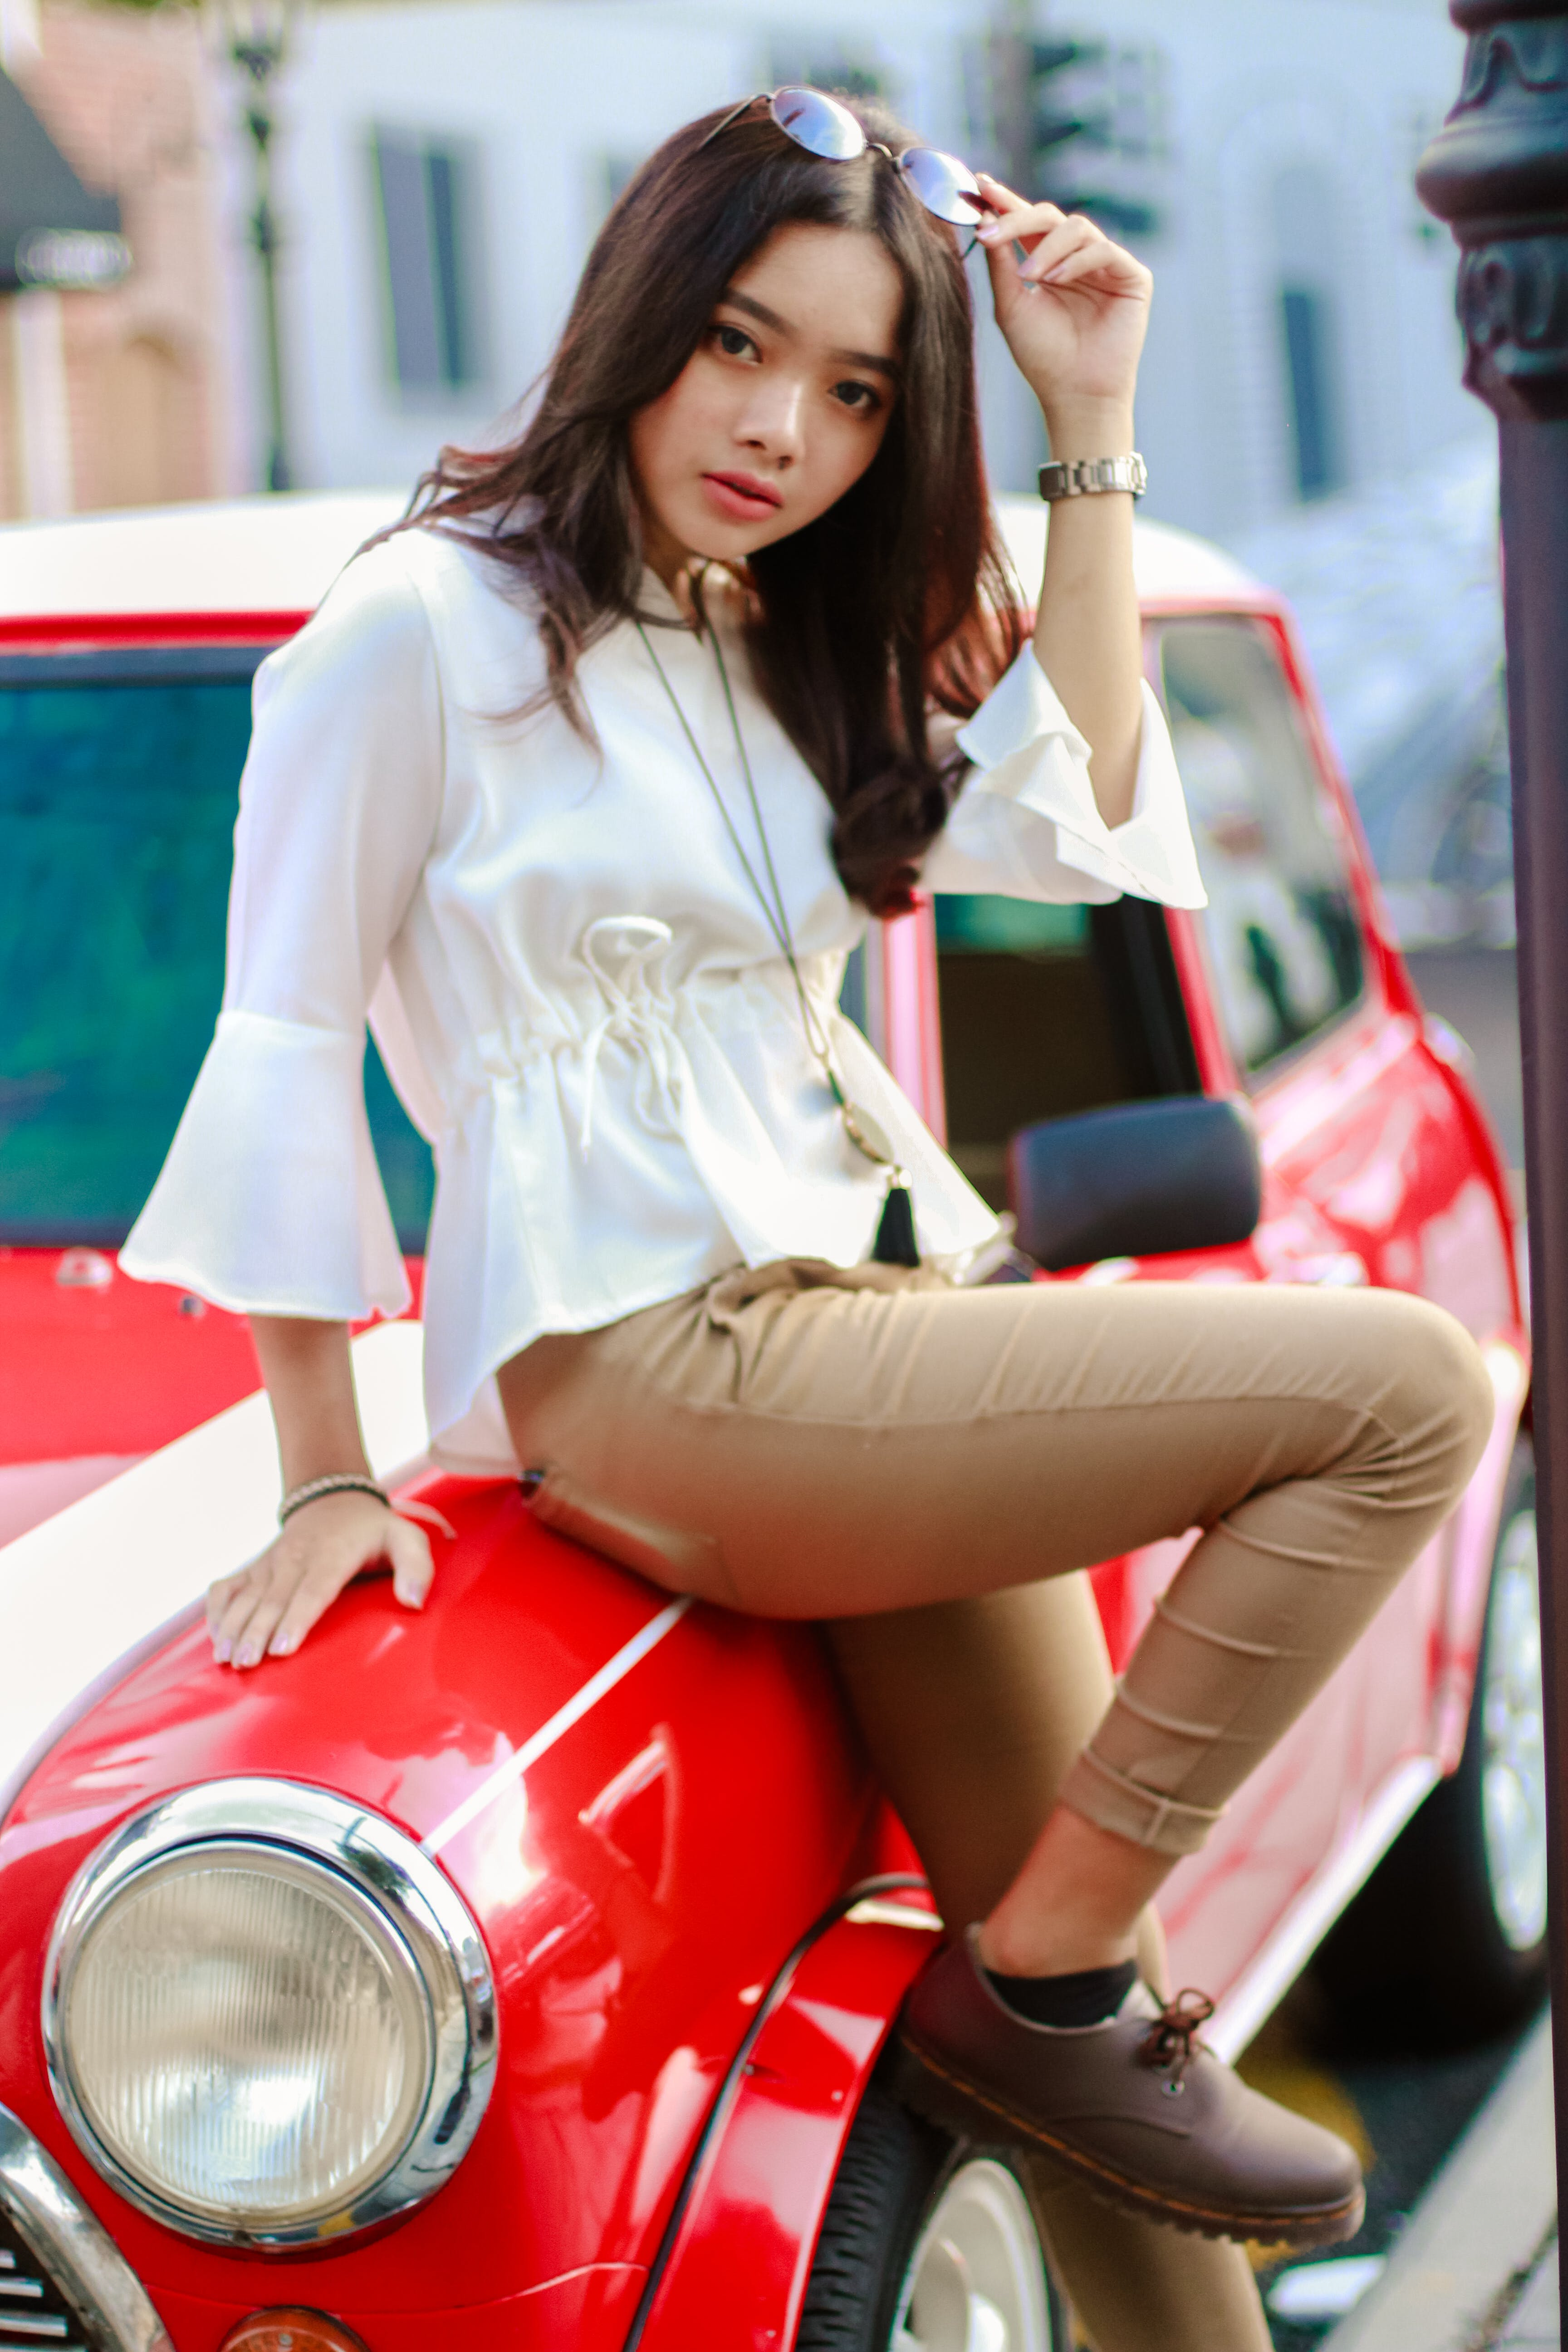 Photography of a Woman Leaning on the Car